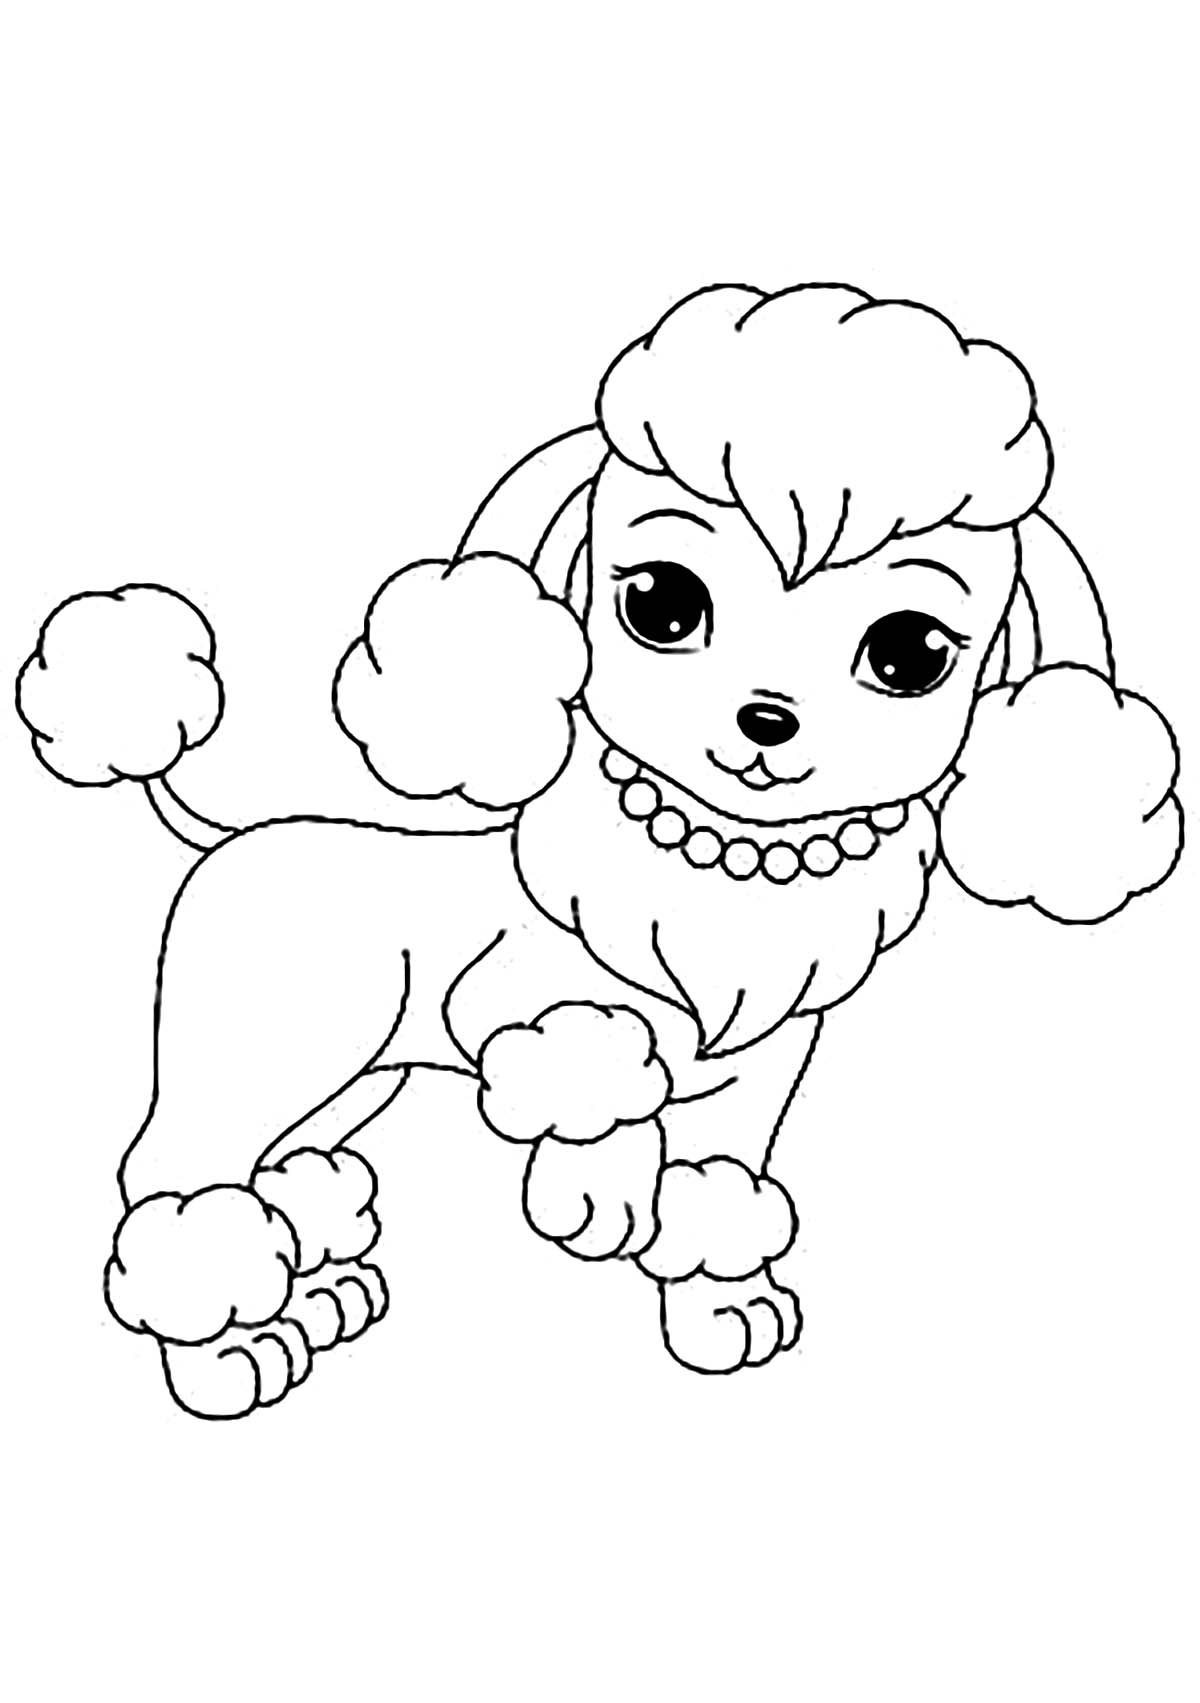 dogs pictures to color dog coloring pages printable coloring pages of dogs for to dogs color pictures